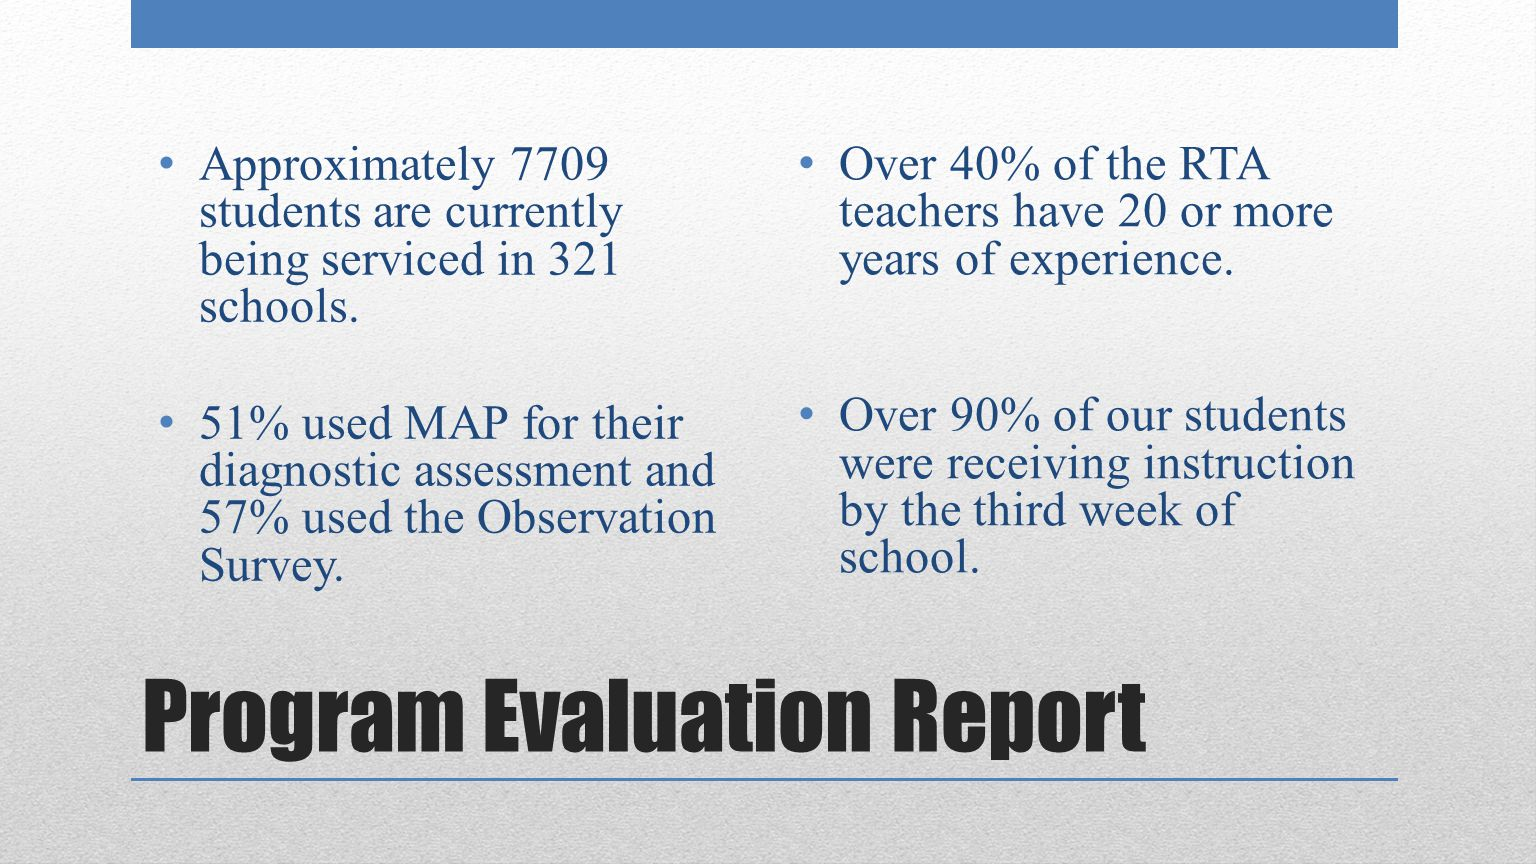 Program Evaluation Report Approximately 7709 students are currently being serviced in 321 schools.